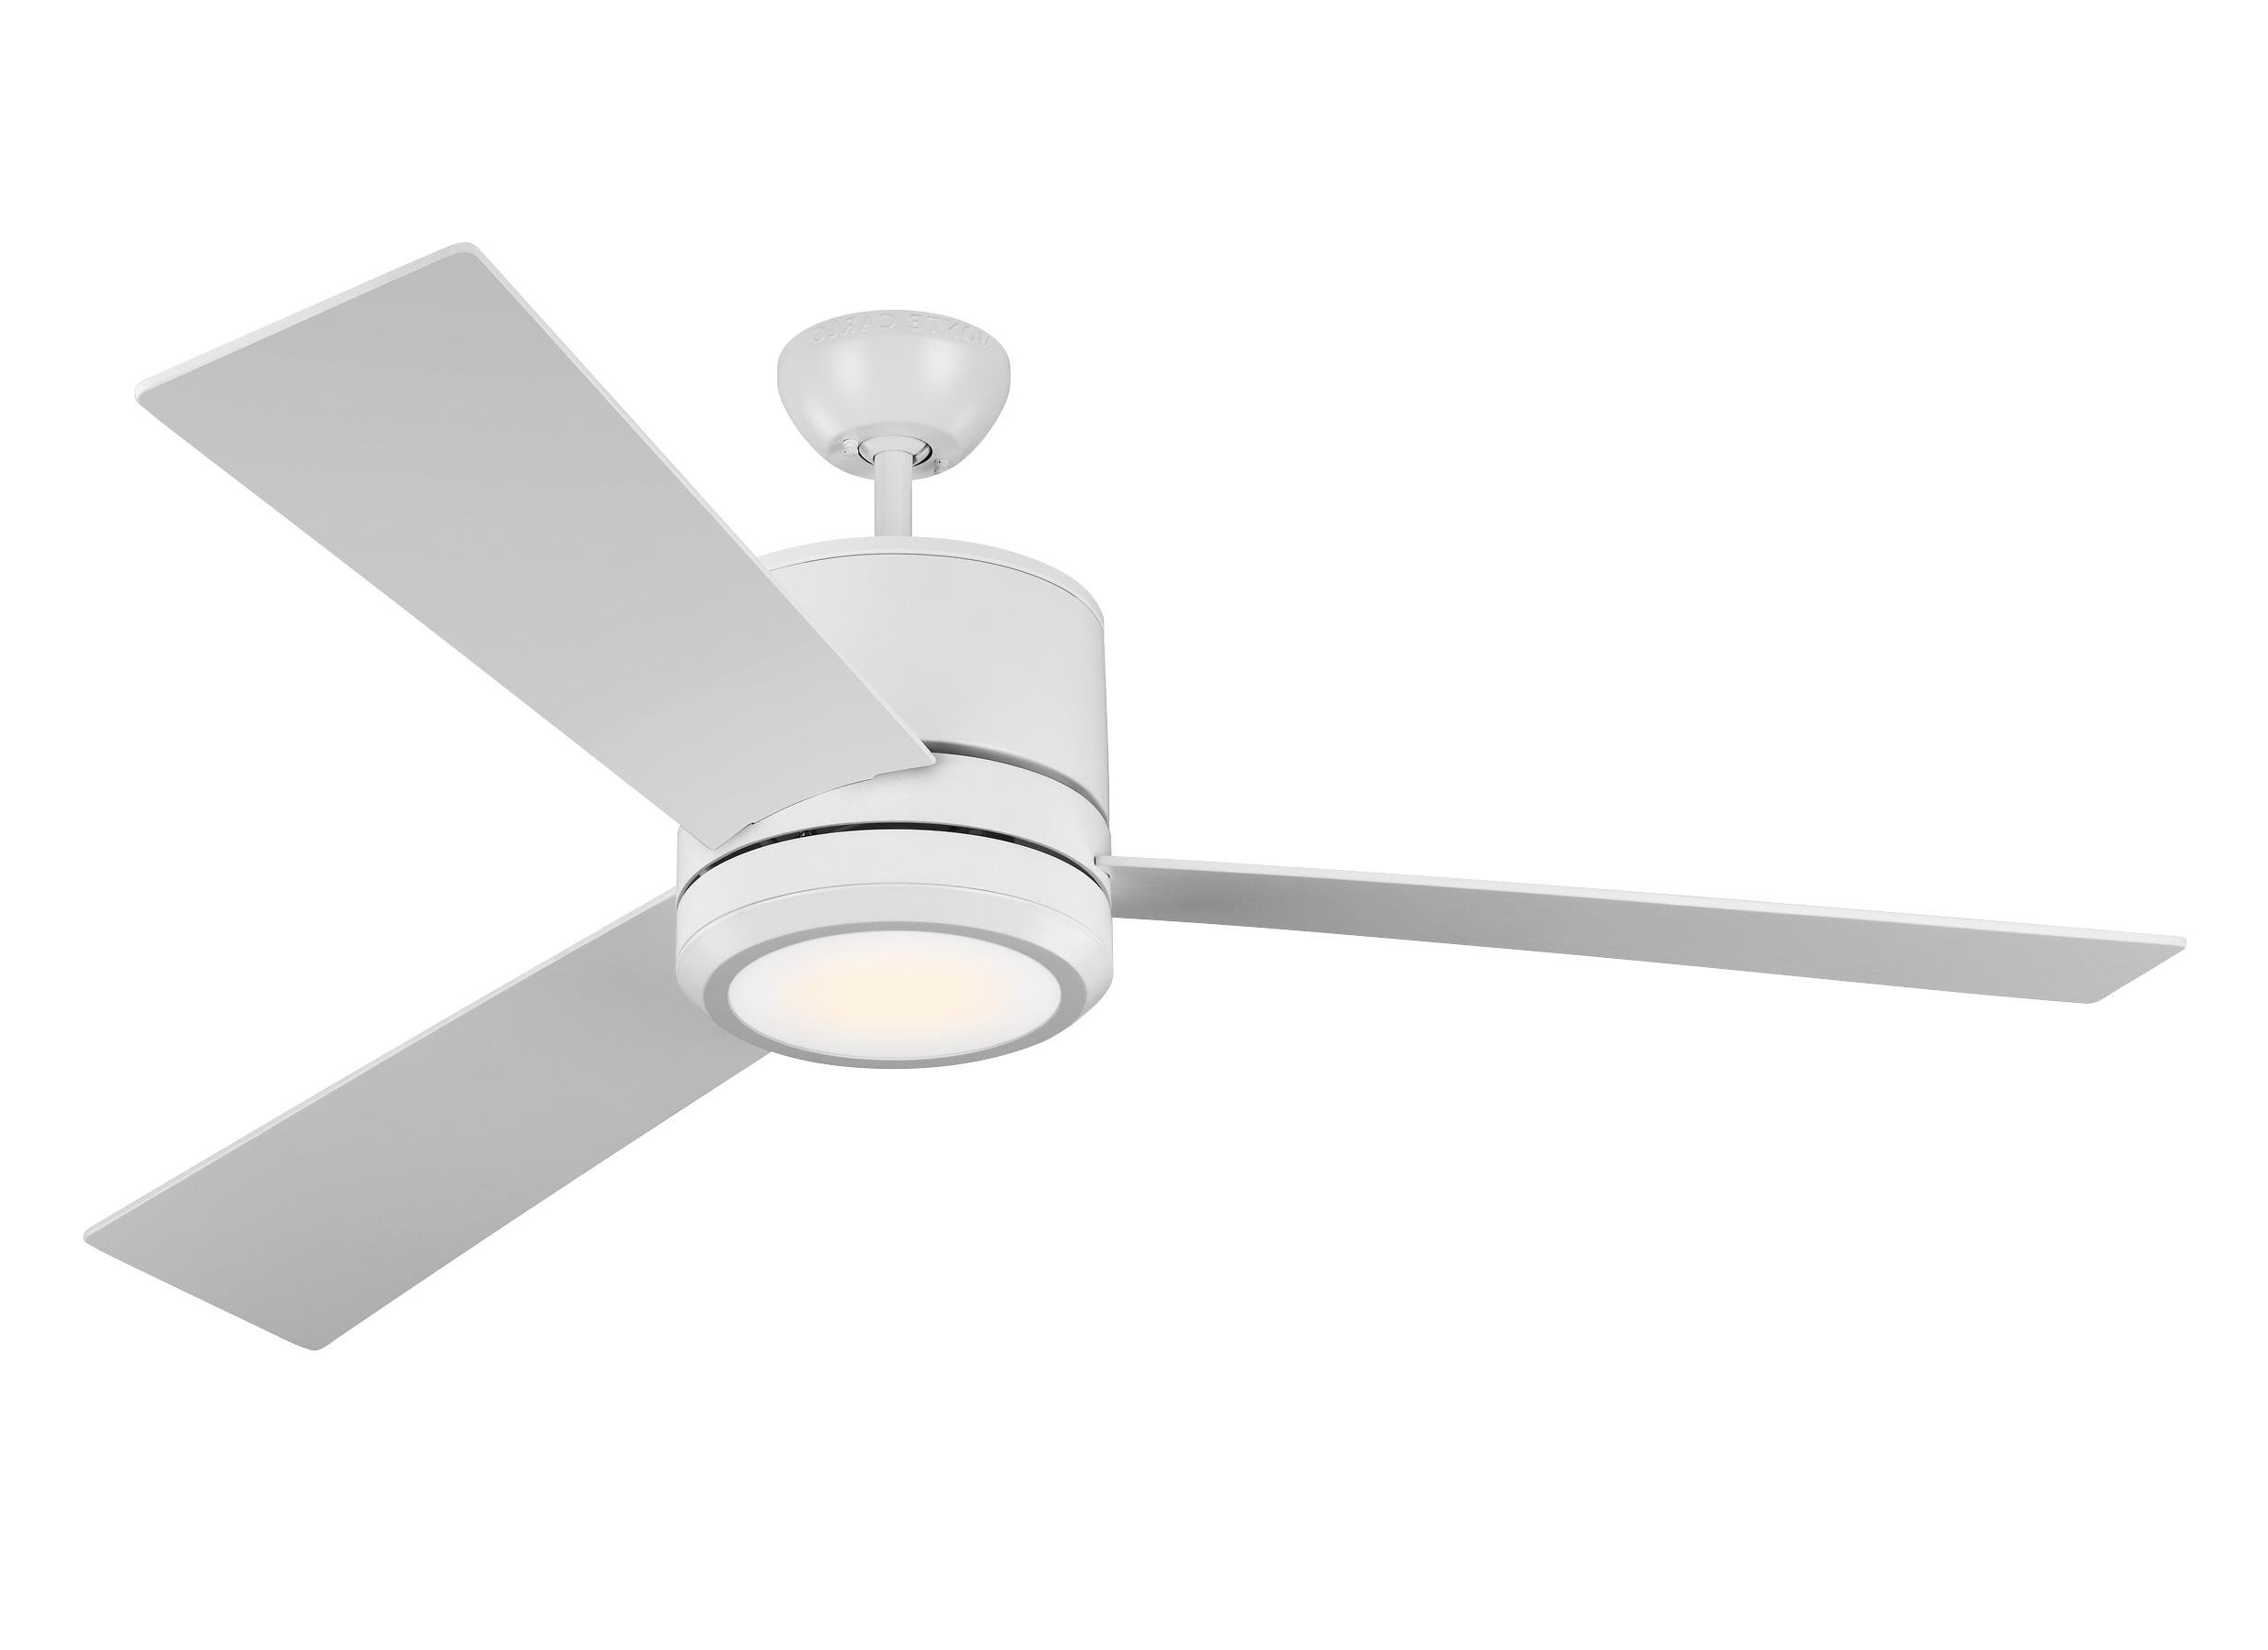 "2020 Cedarton 5 Blade Led Ceiling Fans With Regard To 56"" Ossu 3 Blade Led Ceiling Fan, Light Kit Included (View 4 of 20)"